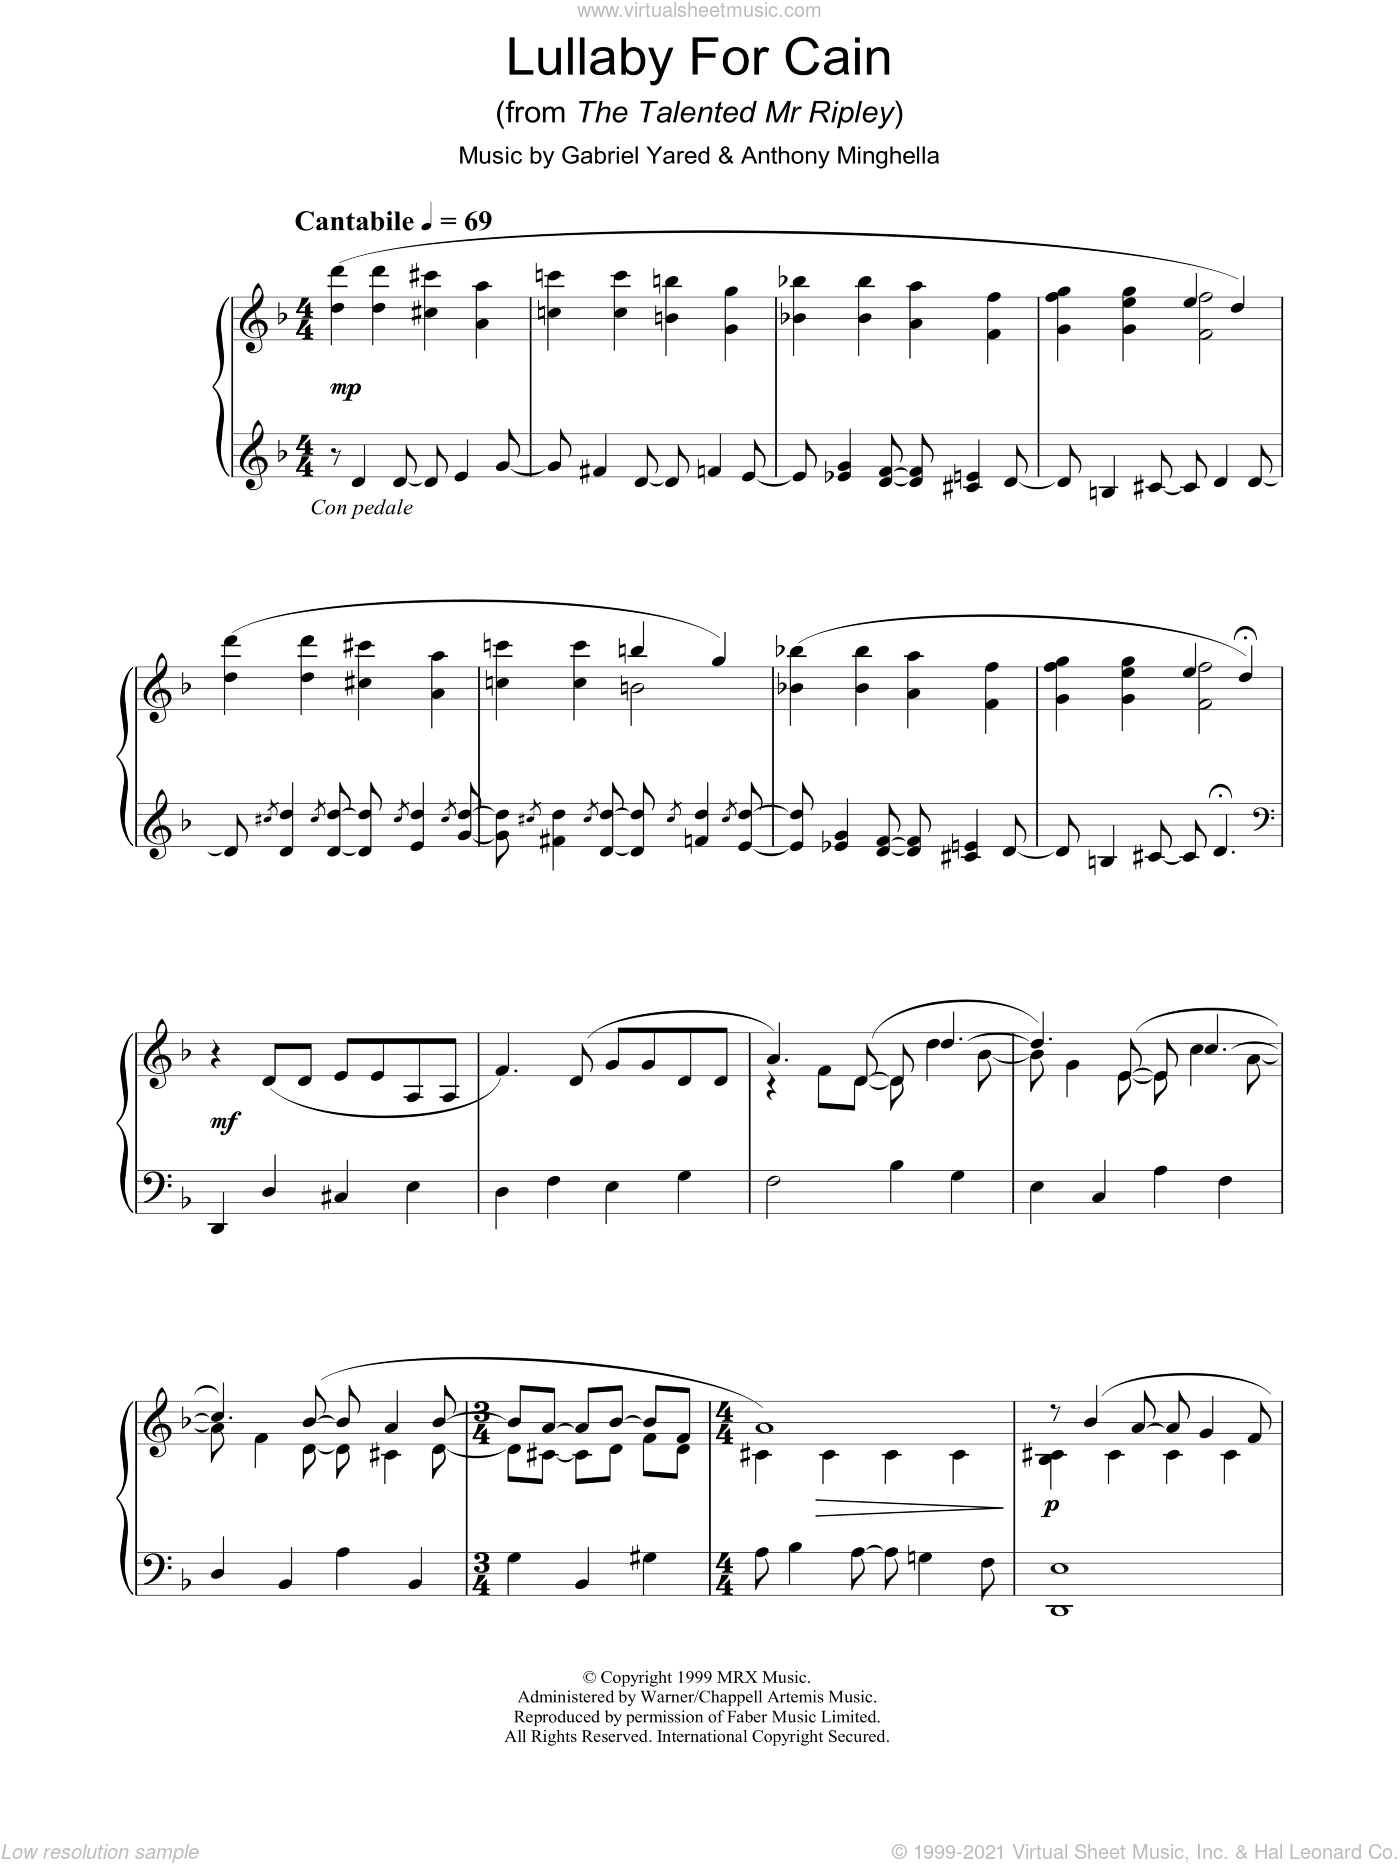 Lullaby For Cain sheet music for piano solo by Anthony Minghella